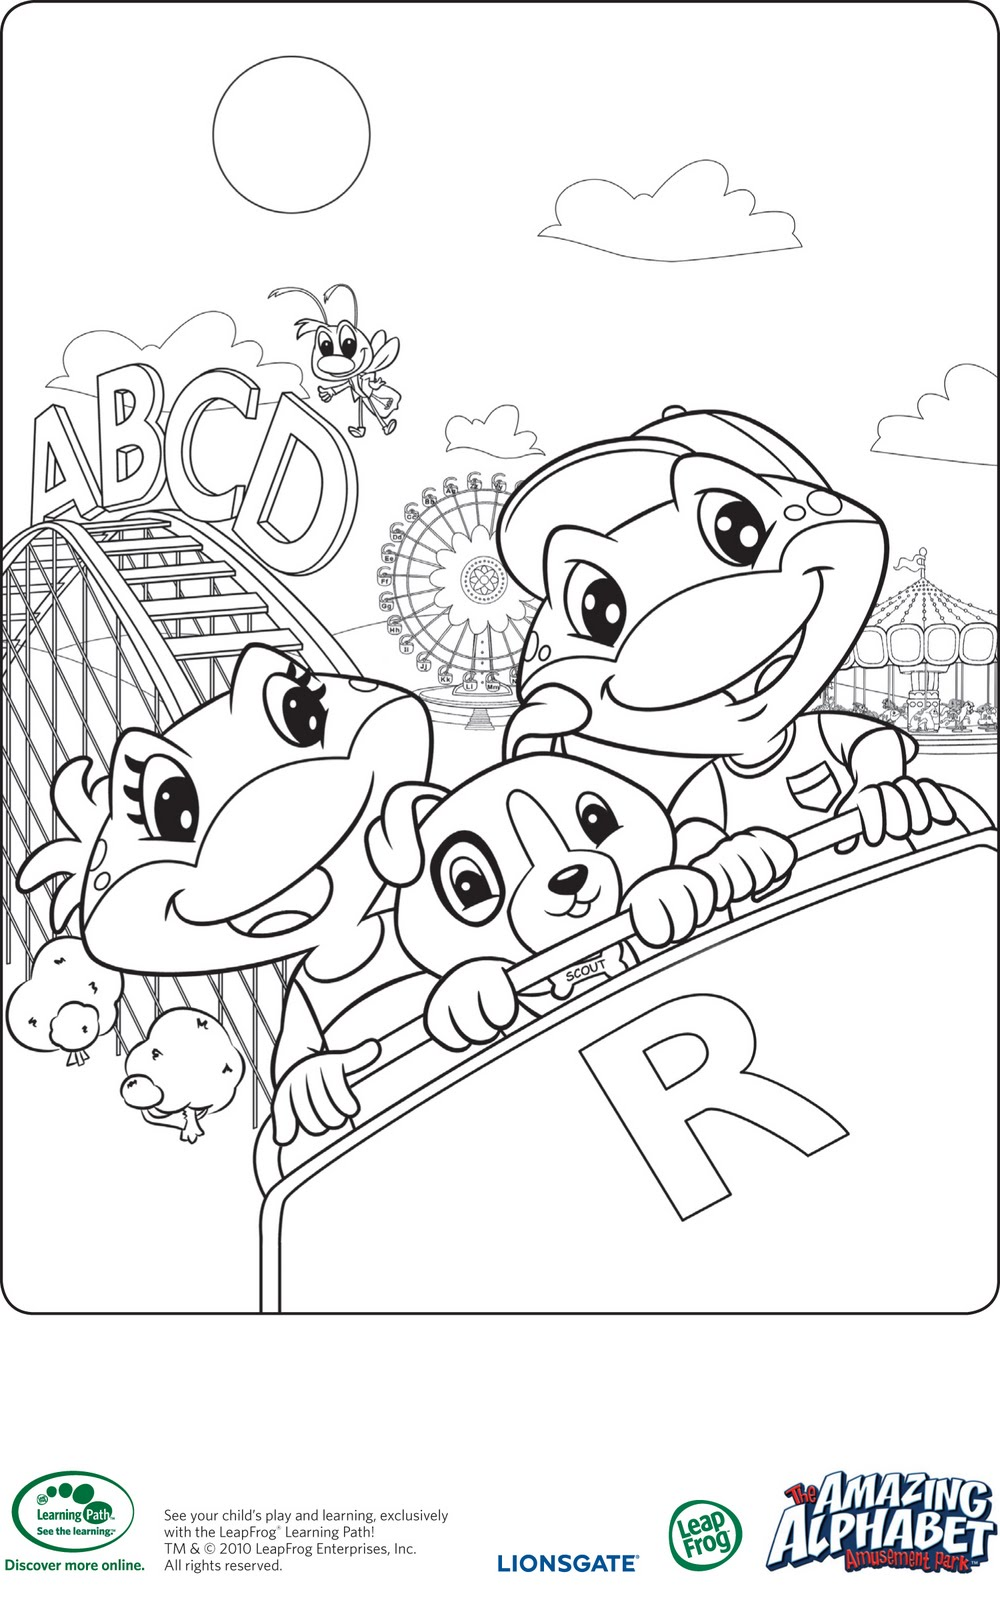 Leapfrog Alphabet Coloring Pages : New dvd titles from leapfrog wee share